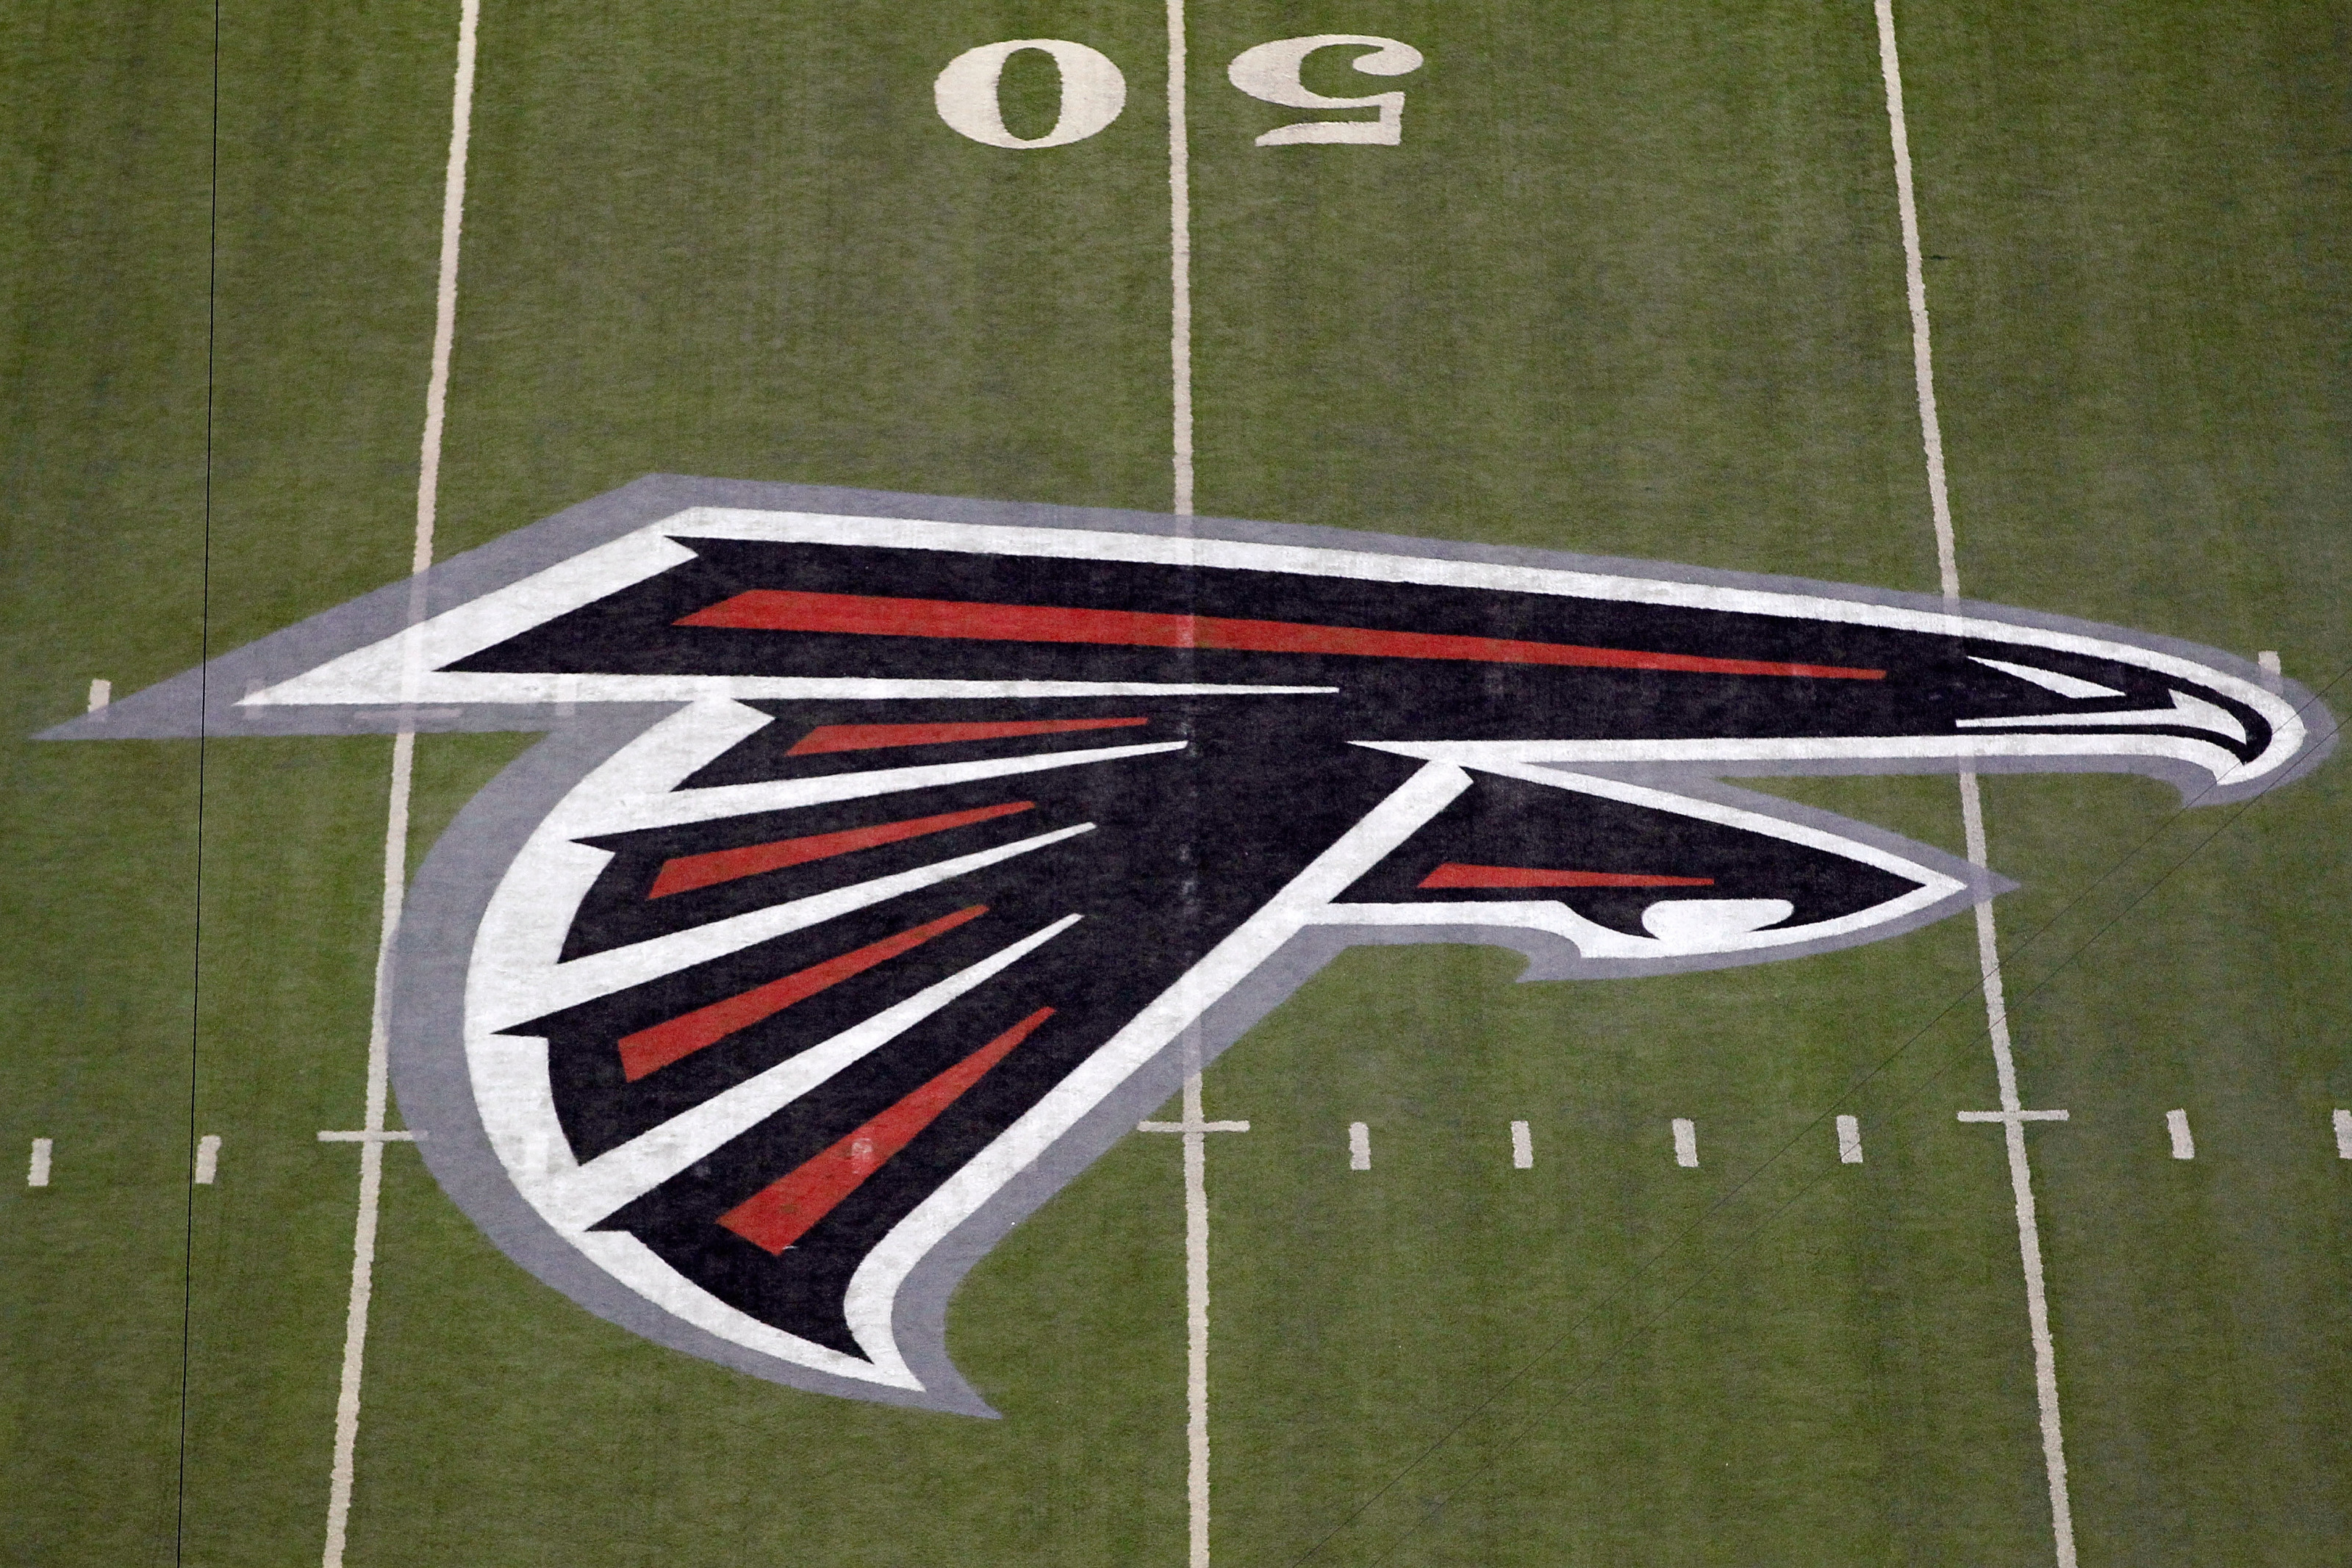 Atlanta Falcons new uniforms are a clear and obvious downgrade